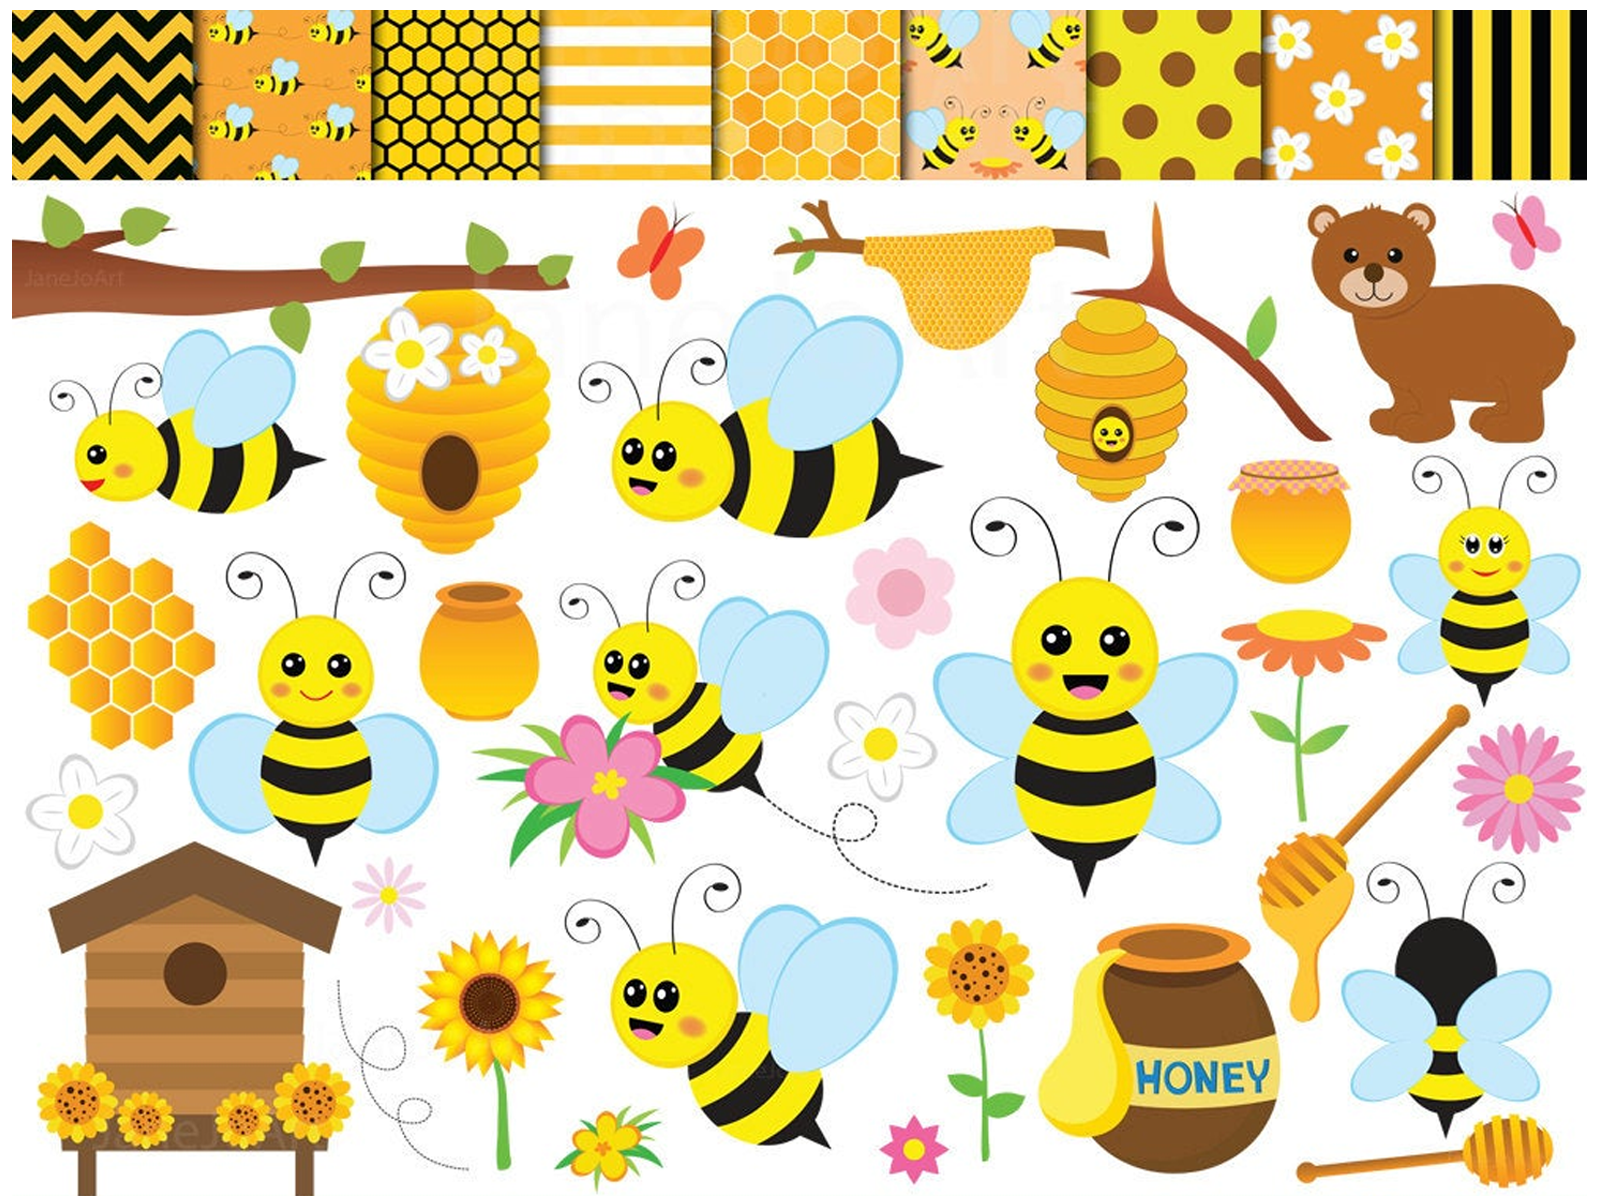 Honey Bee With Jar Clipart - Honey Bee Clipart, HD Png Download - vhv